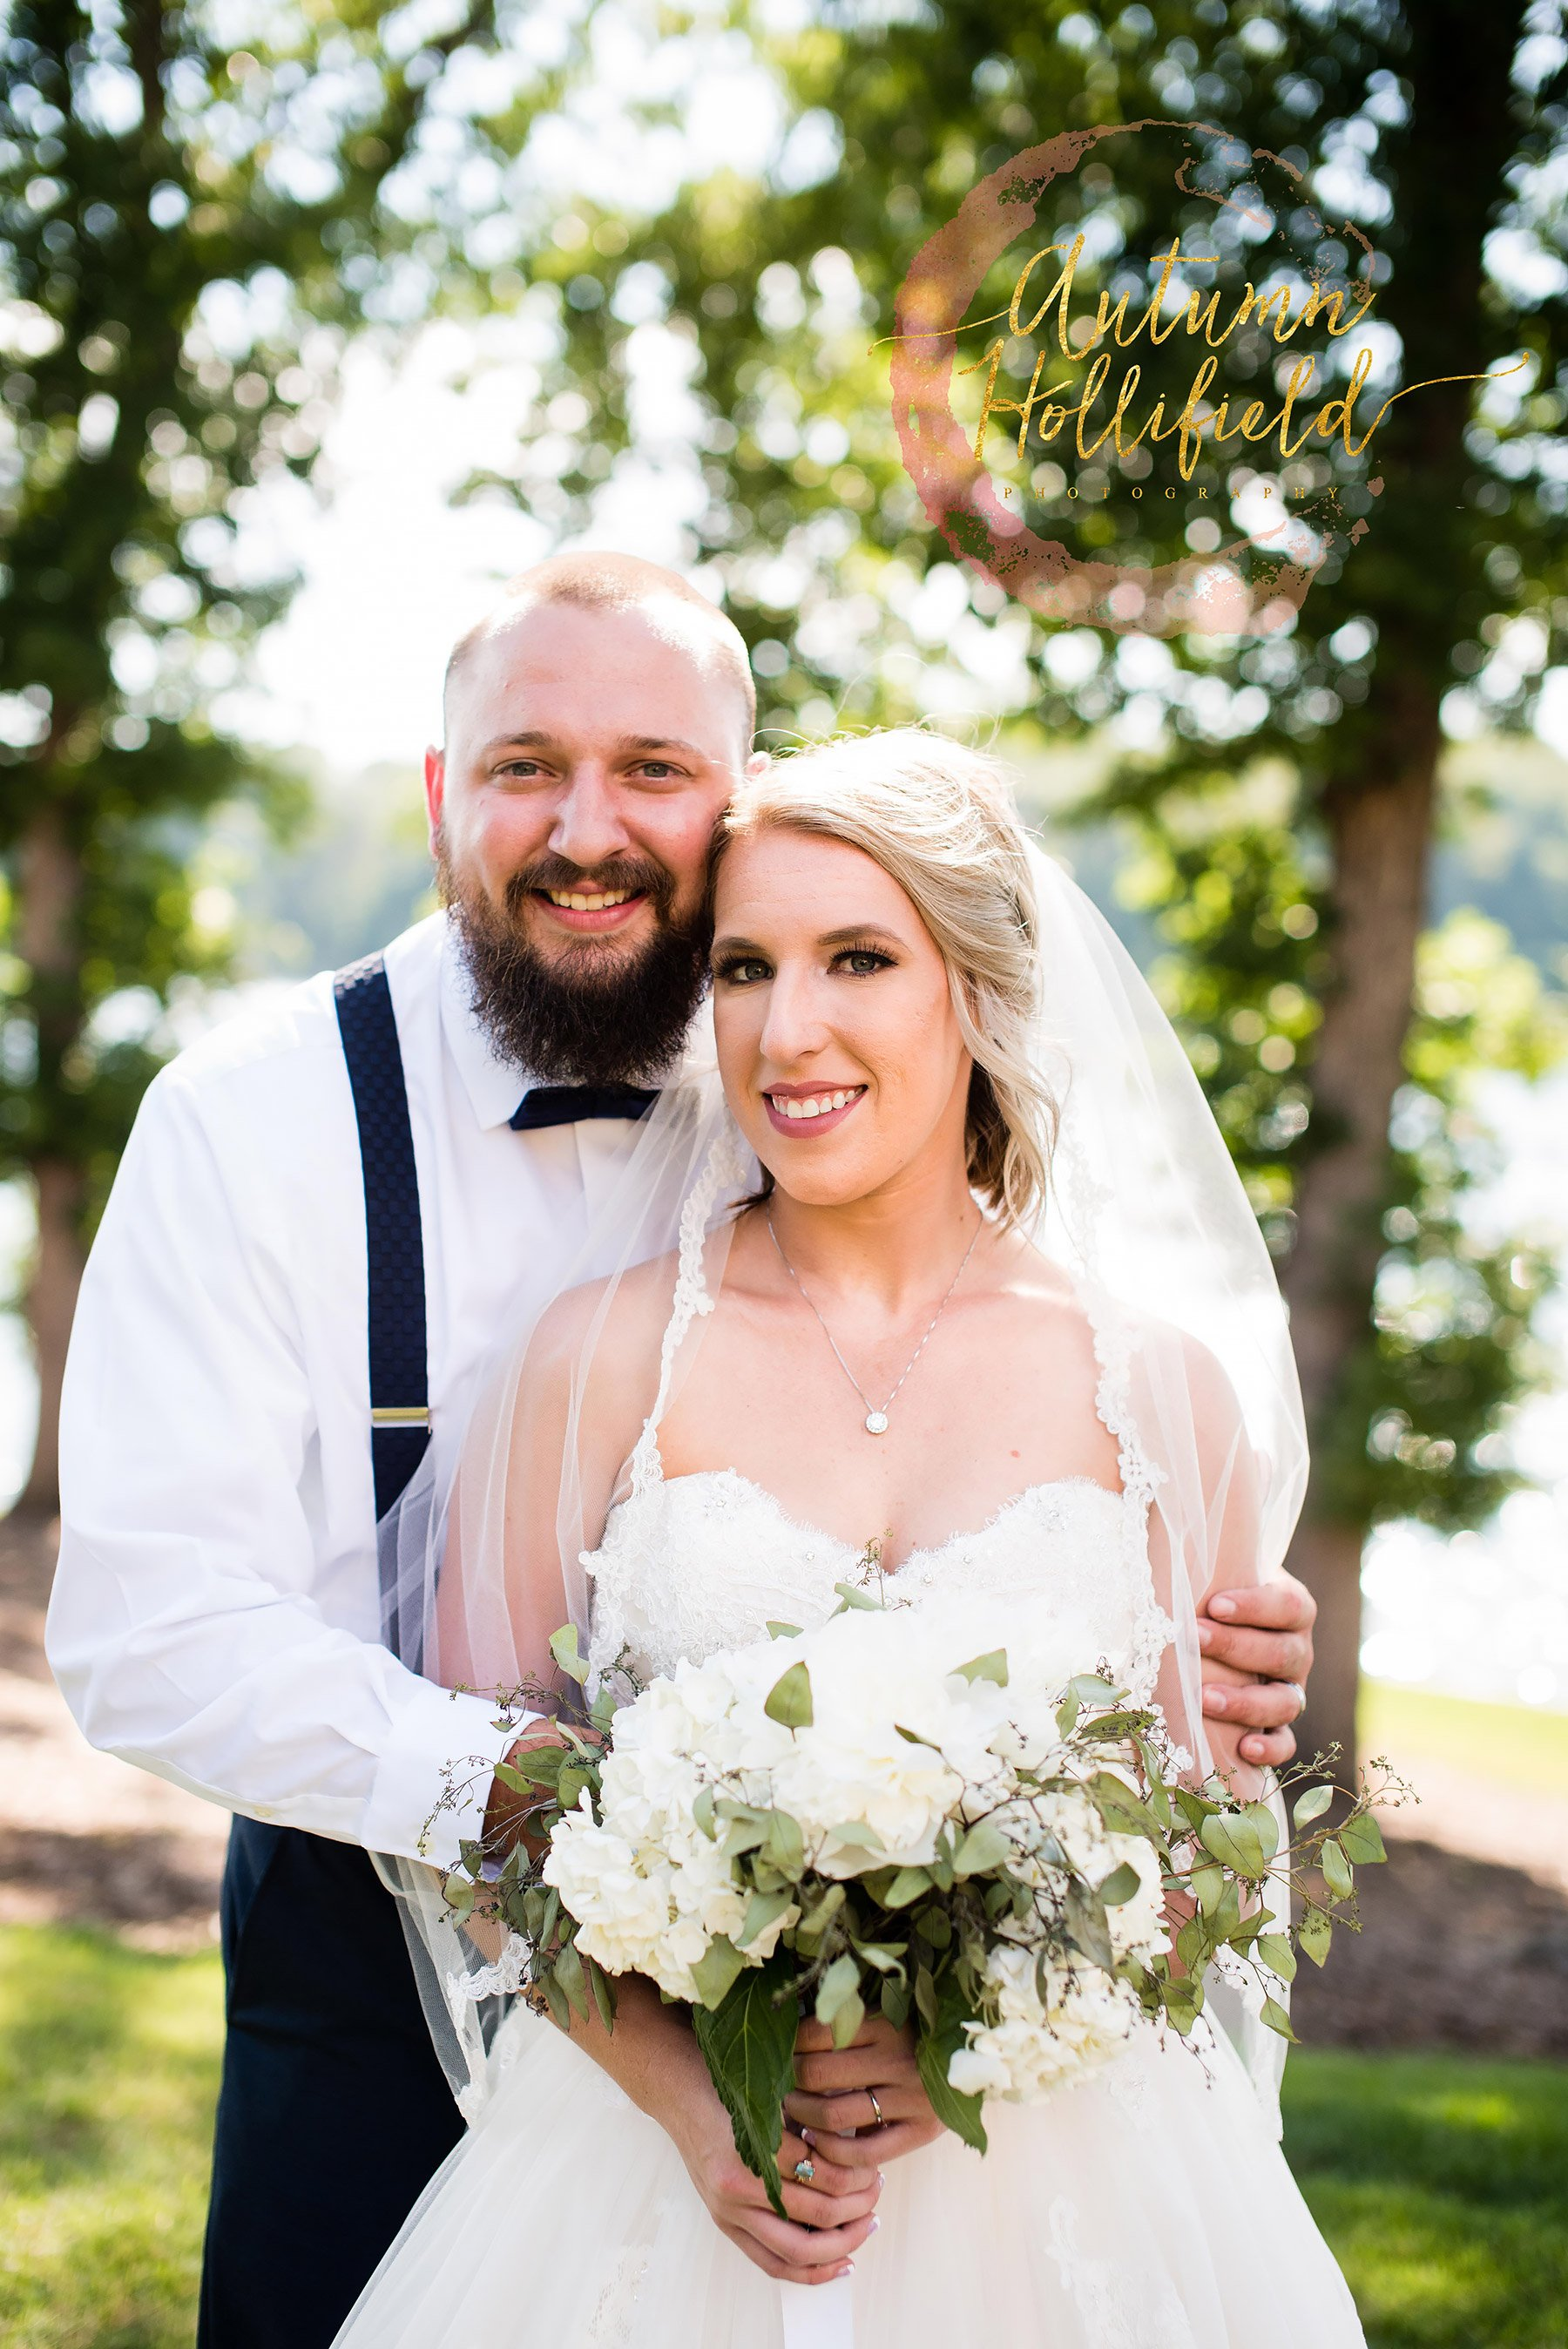 North Carolina Couple Wins Dream Wedding in Auction After Canceled Ceremony: It Was 'Perfect'